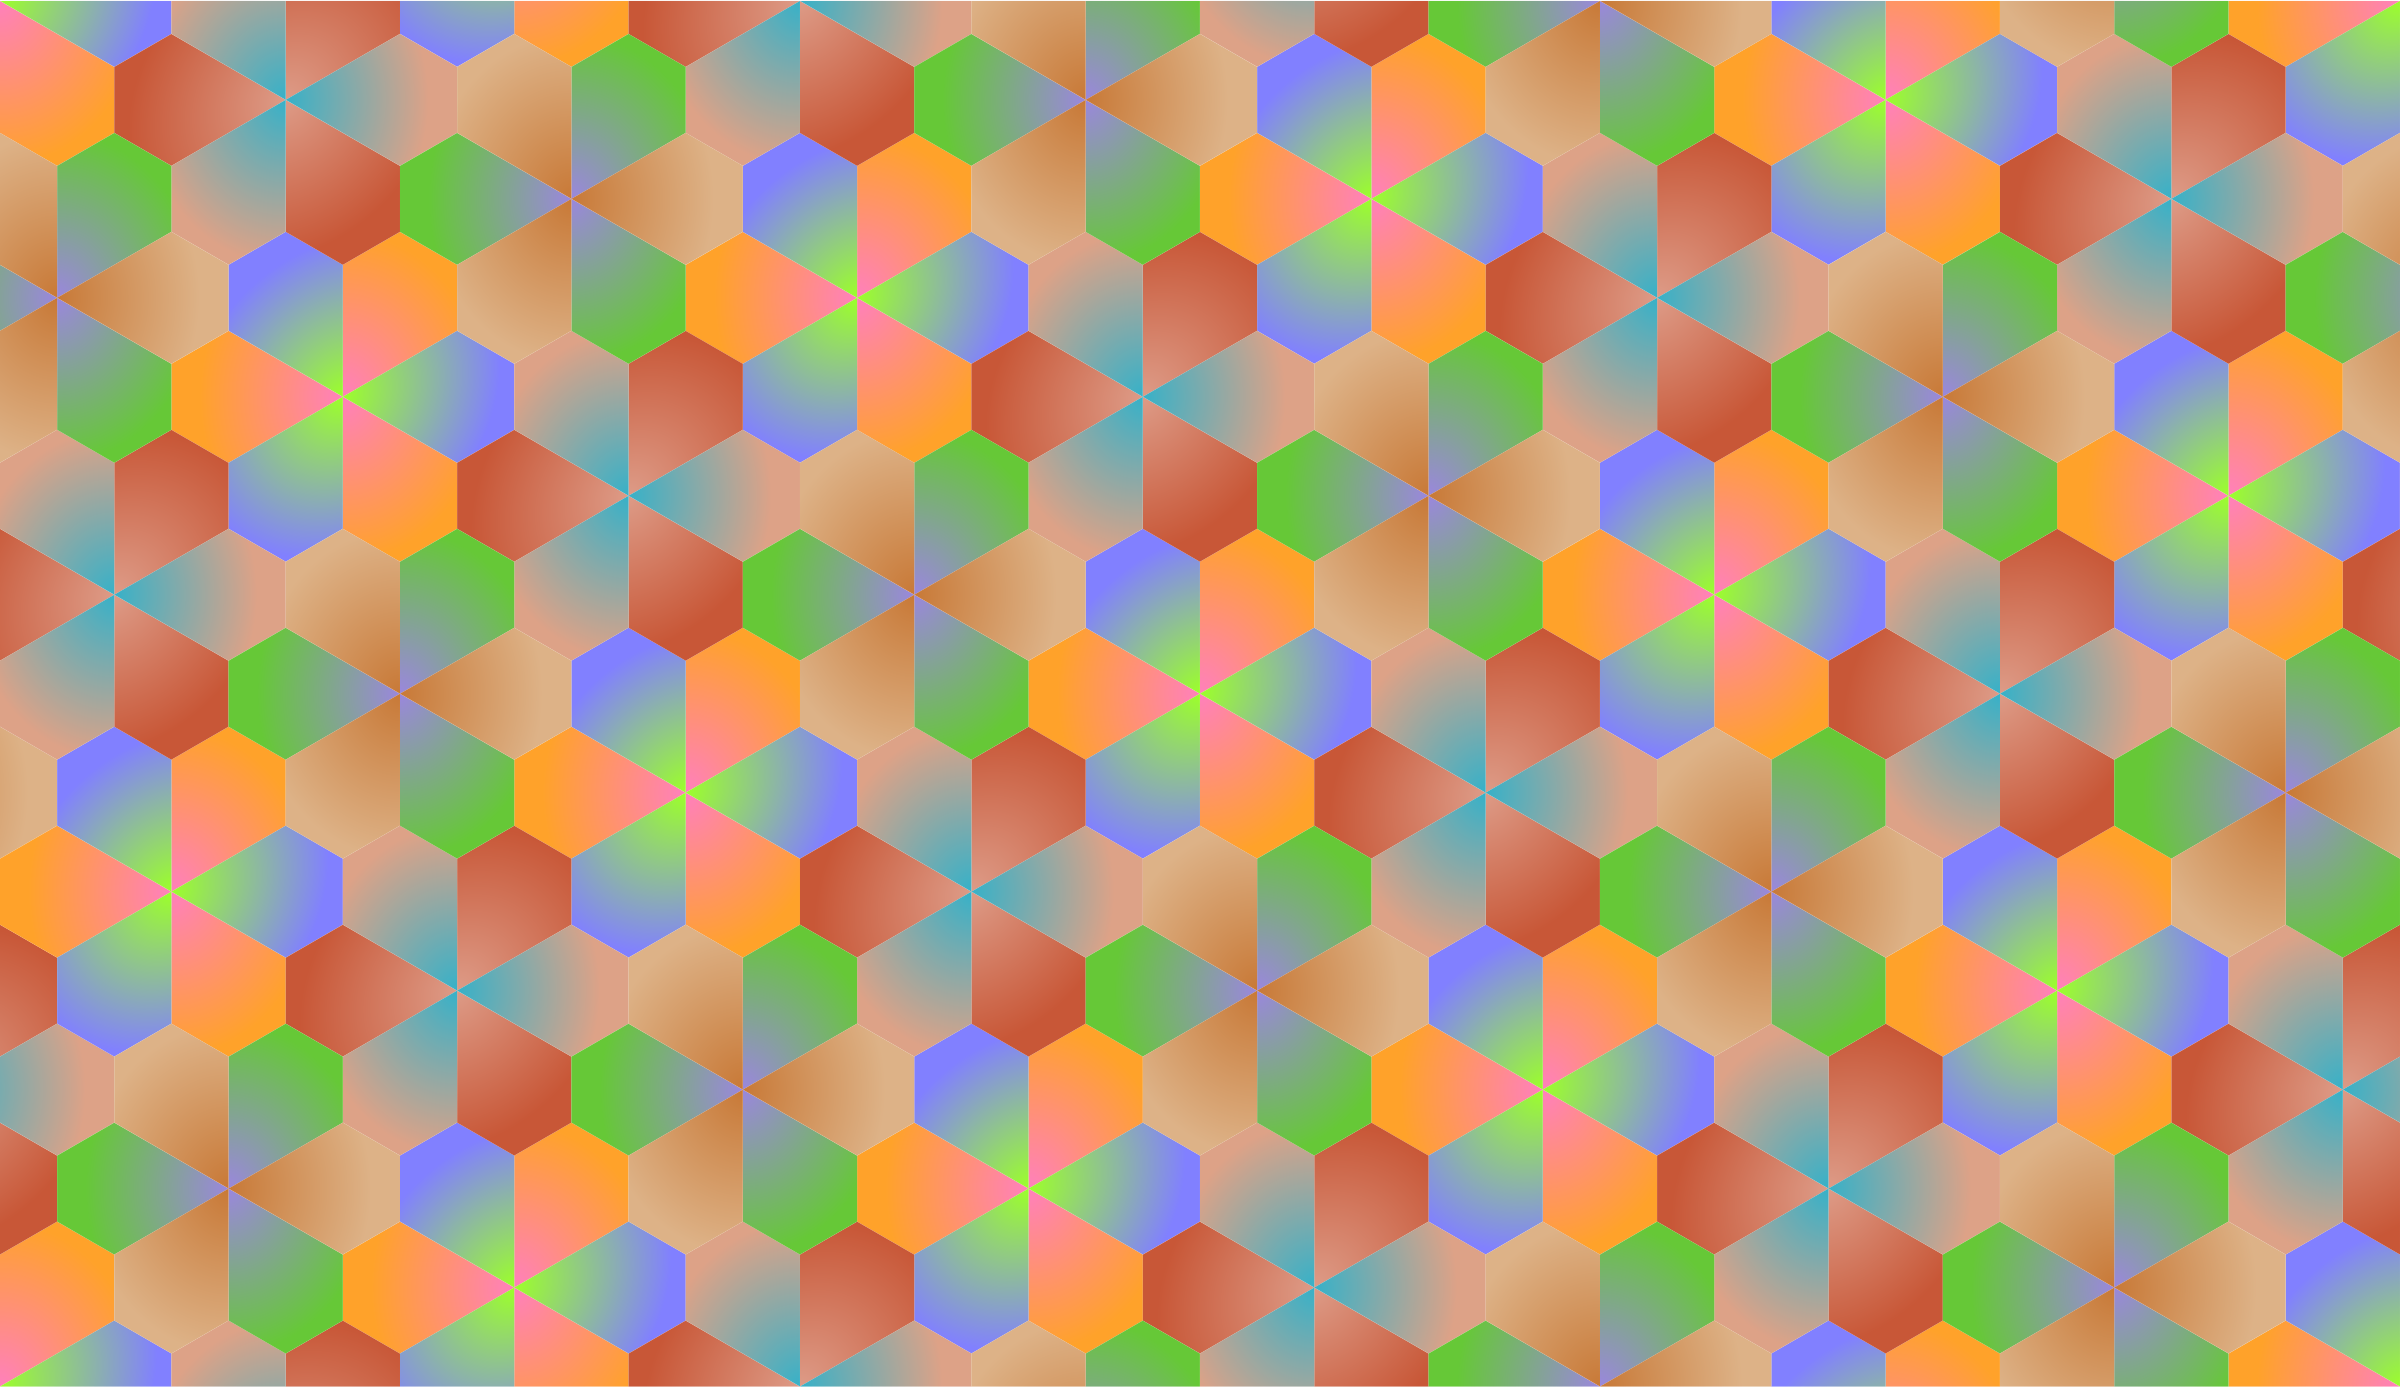 Tessellation 10 (variant 2) by Firkin